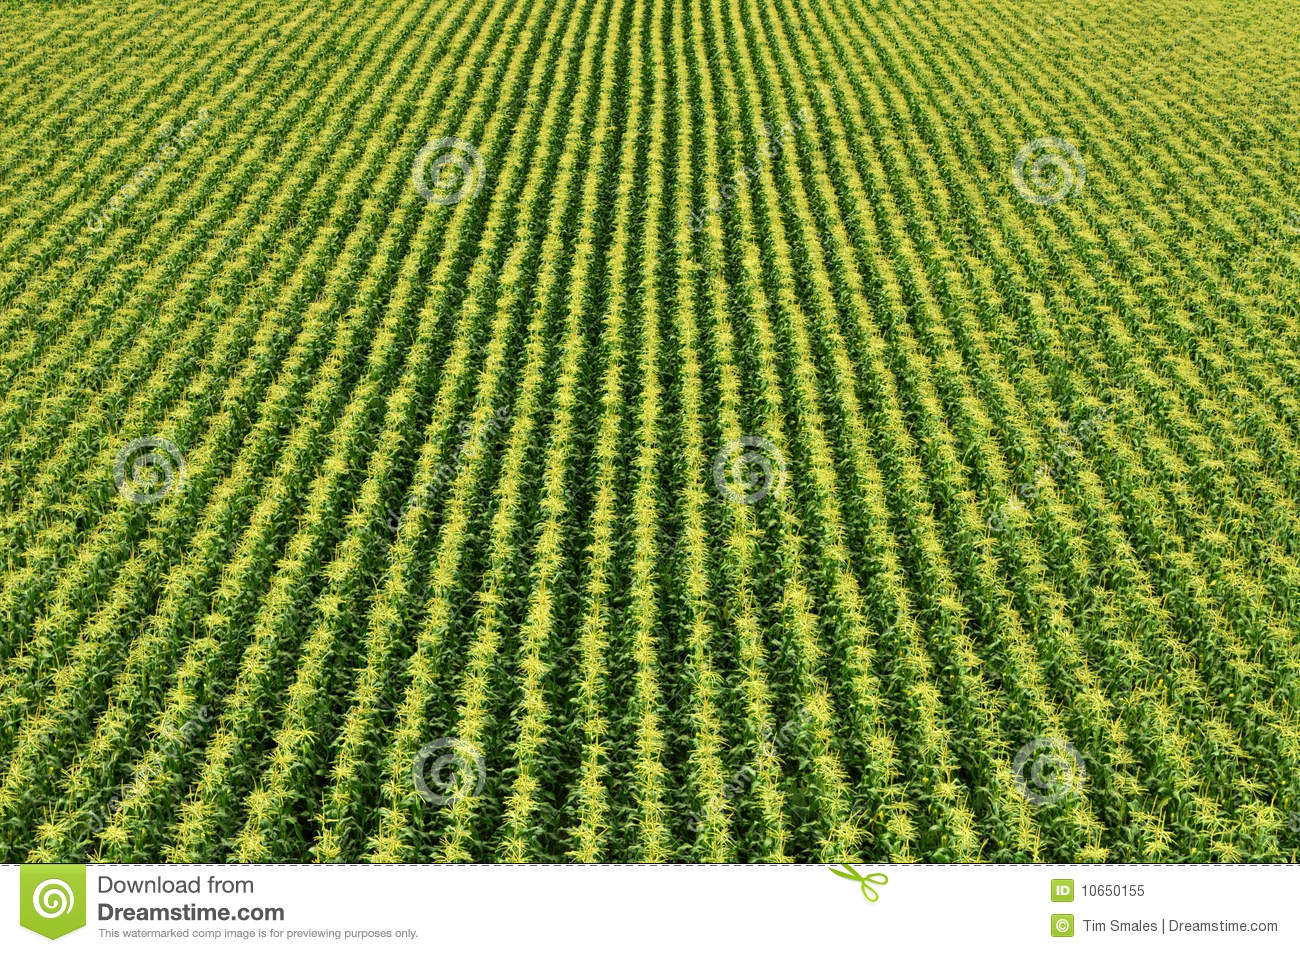 Corn Field/Sweetcorn Field